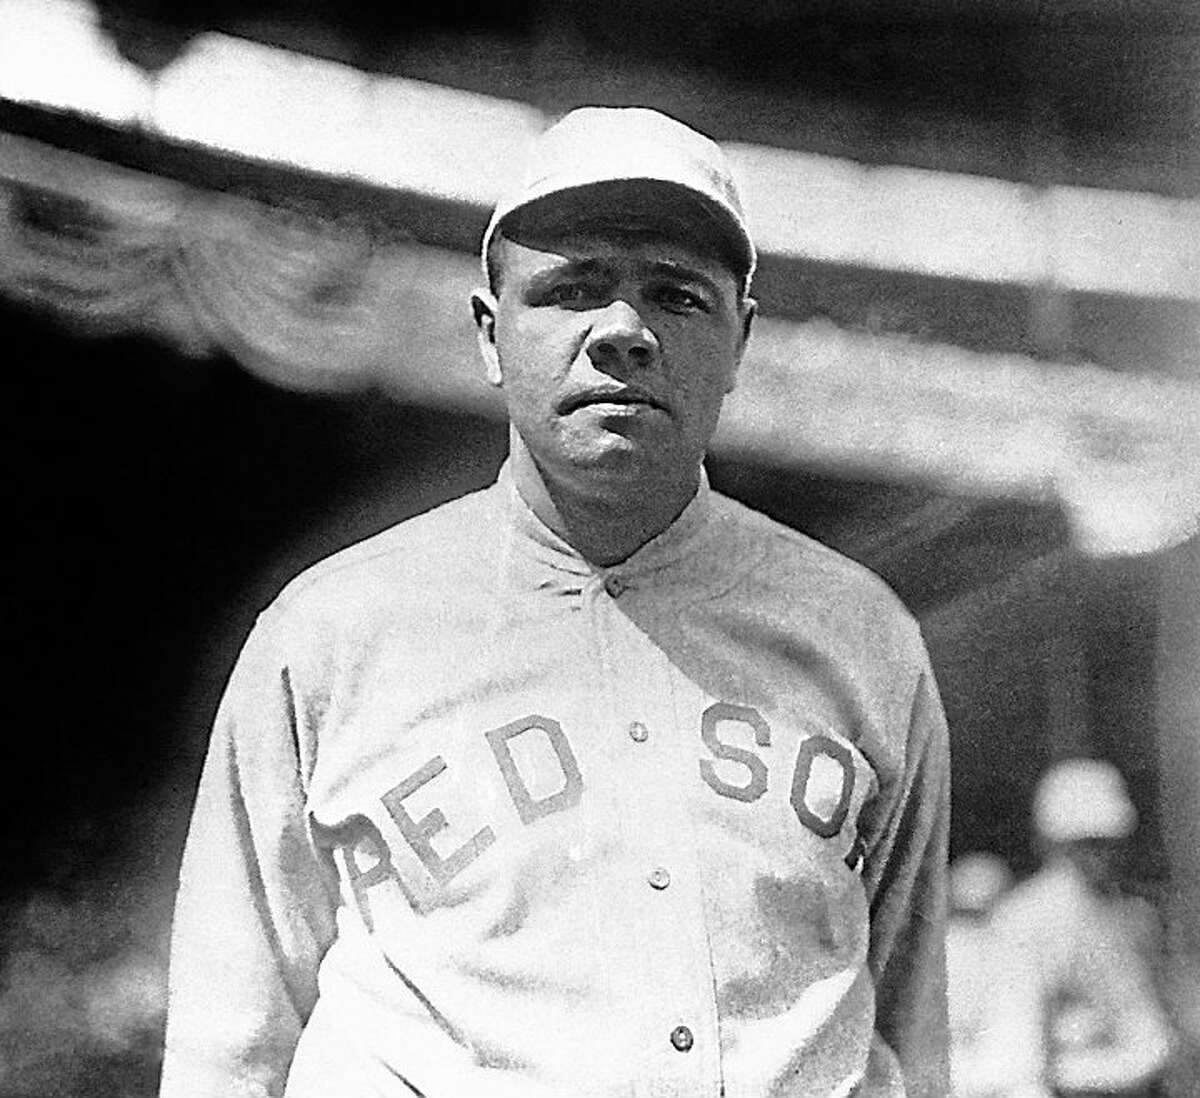 This 1919 file photo shows Boston Red Sox player Babe Ruth. Ruth played in the 1918 World Series against the Chicago Cubs that the Red Sox won 4-2. In a 1920 court deposition on display at the Chicago History Museum by Chicago White Sox pitcher Eddie Cicotte, one of the key members from the infamous 1919 Black Sox scandal, he hinted that the White Sox got the idea to throw the 1919 World Series after the Chicago Cubs threw the 1918 World Series.